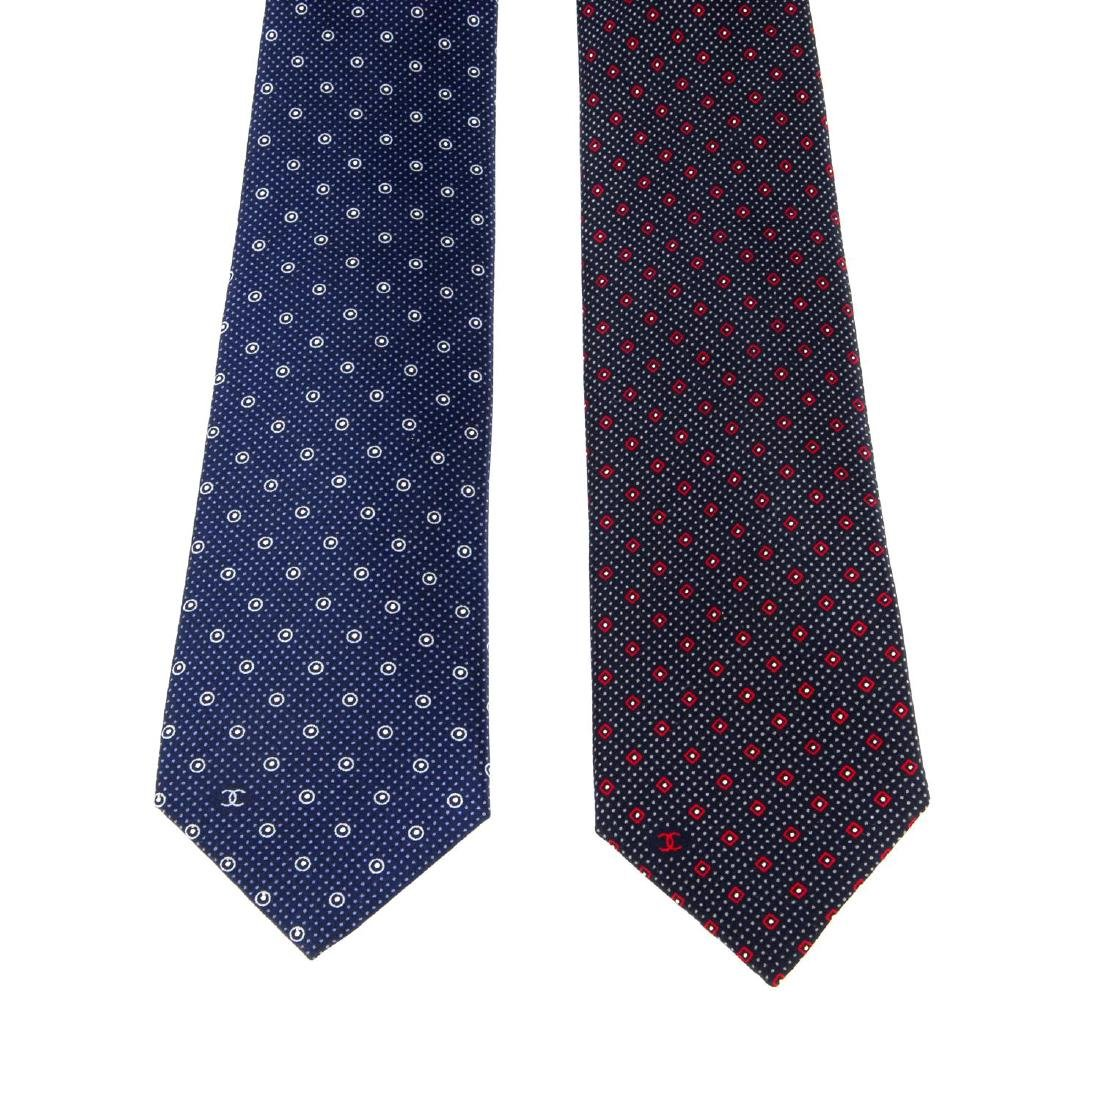 CHANEL - two ties. To include a blue example with light